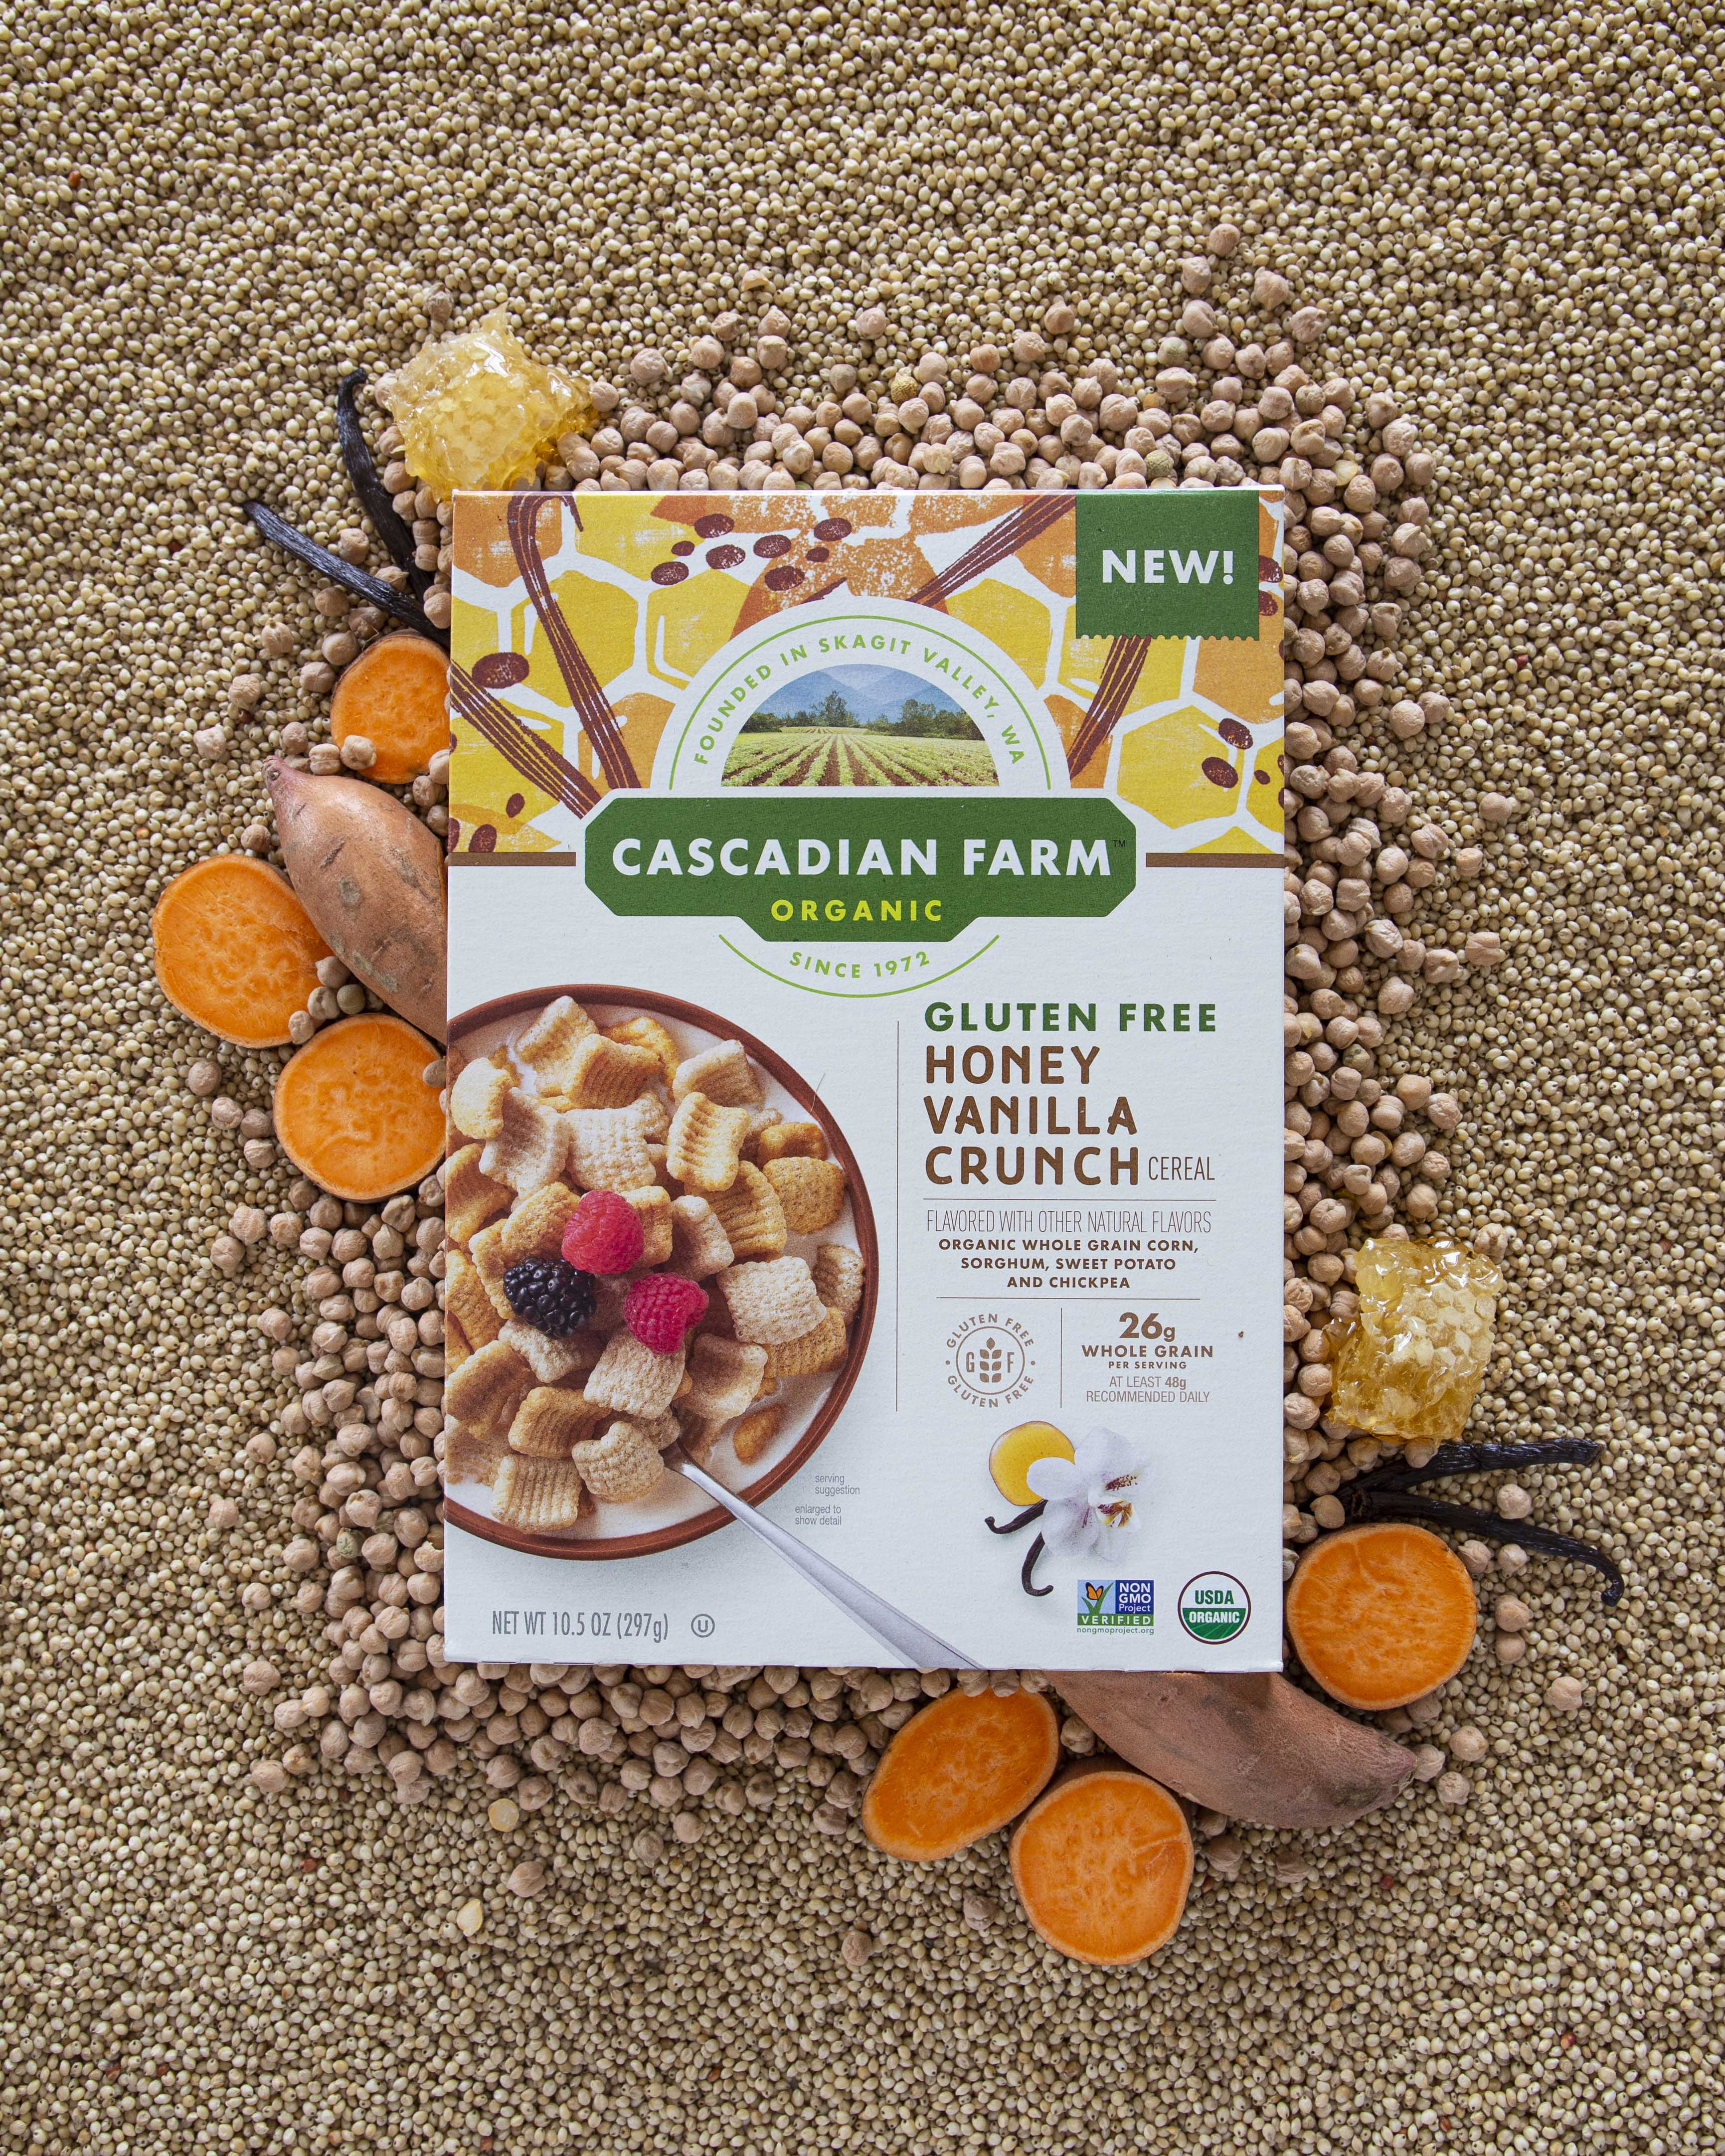 Cascadian Farm New Product Launch 2019